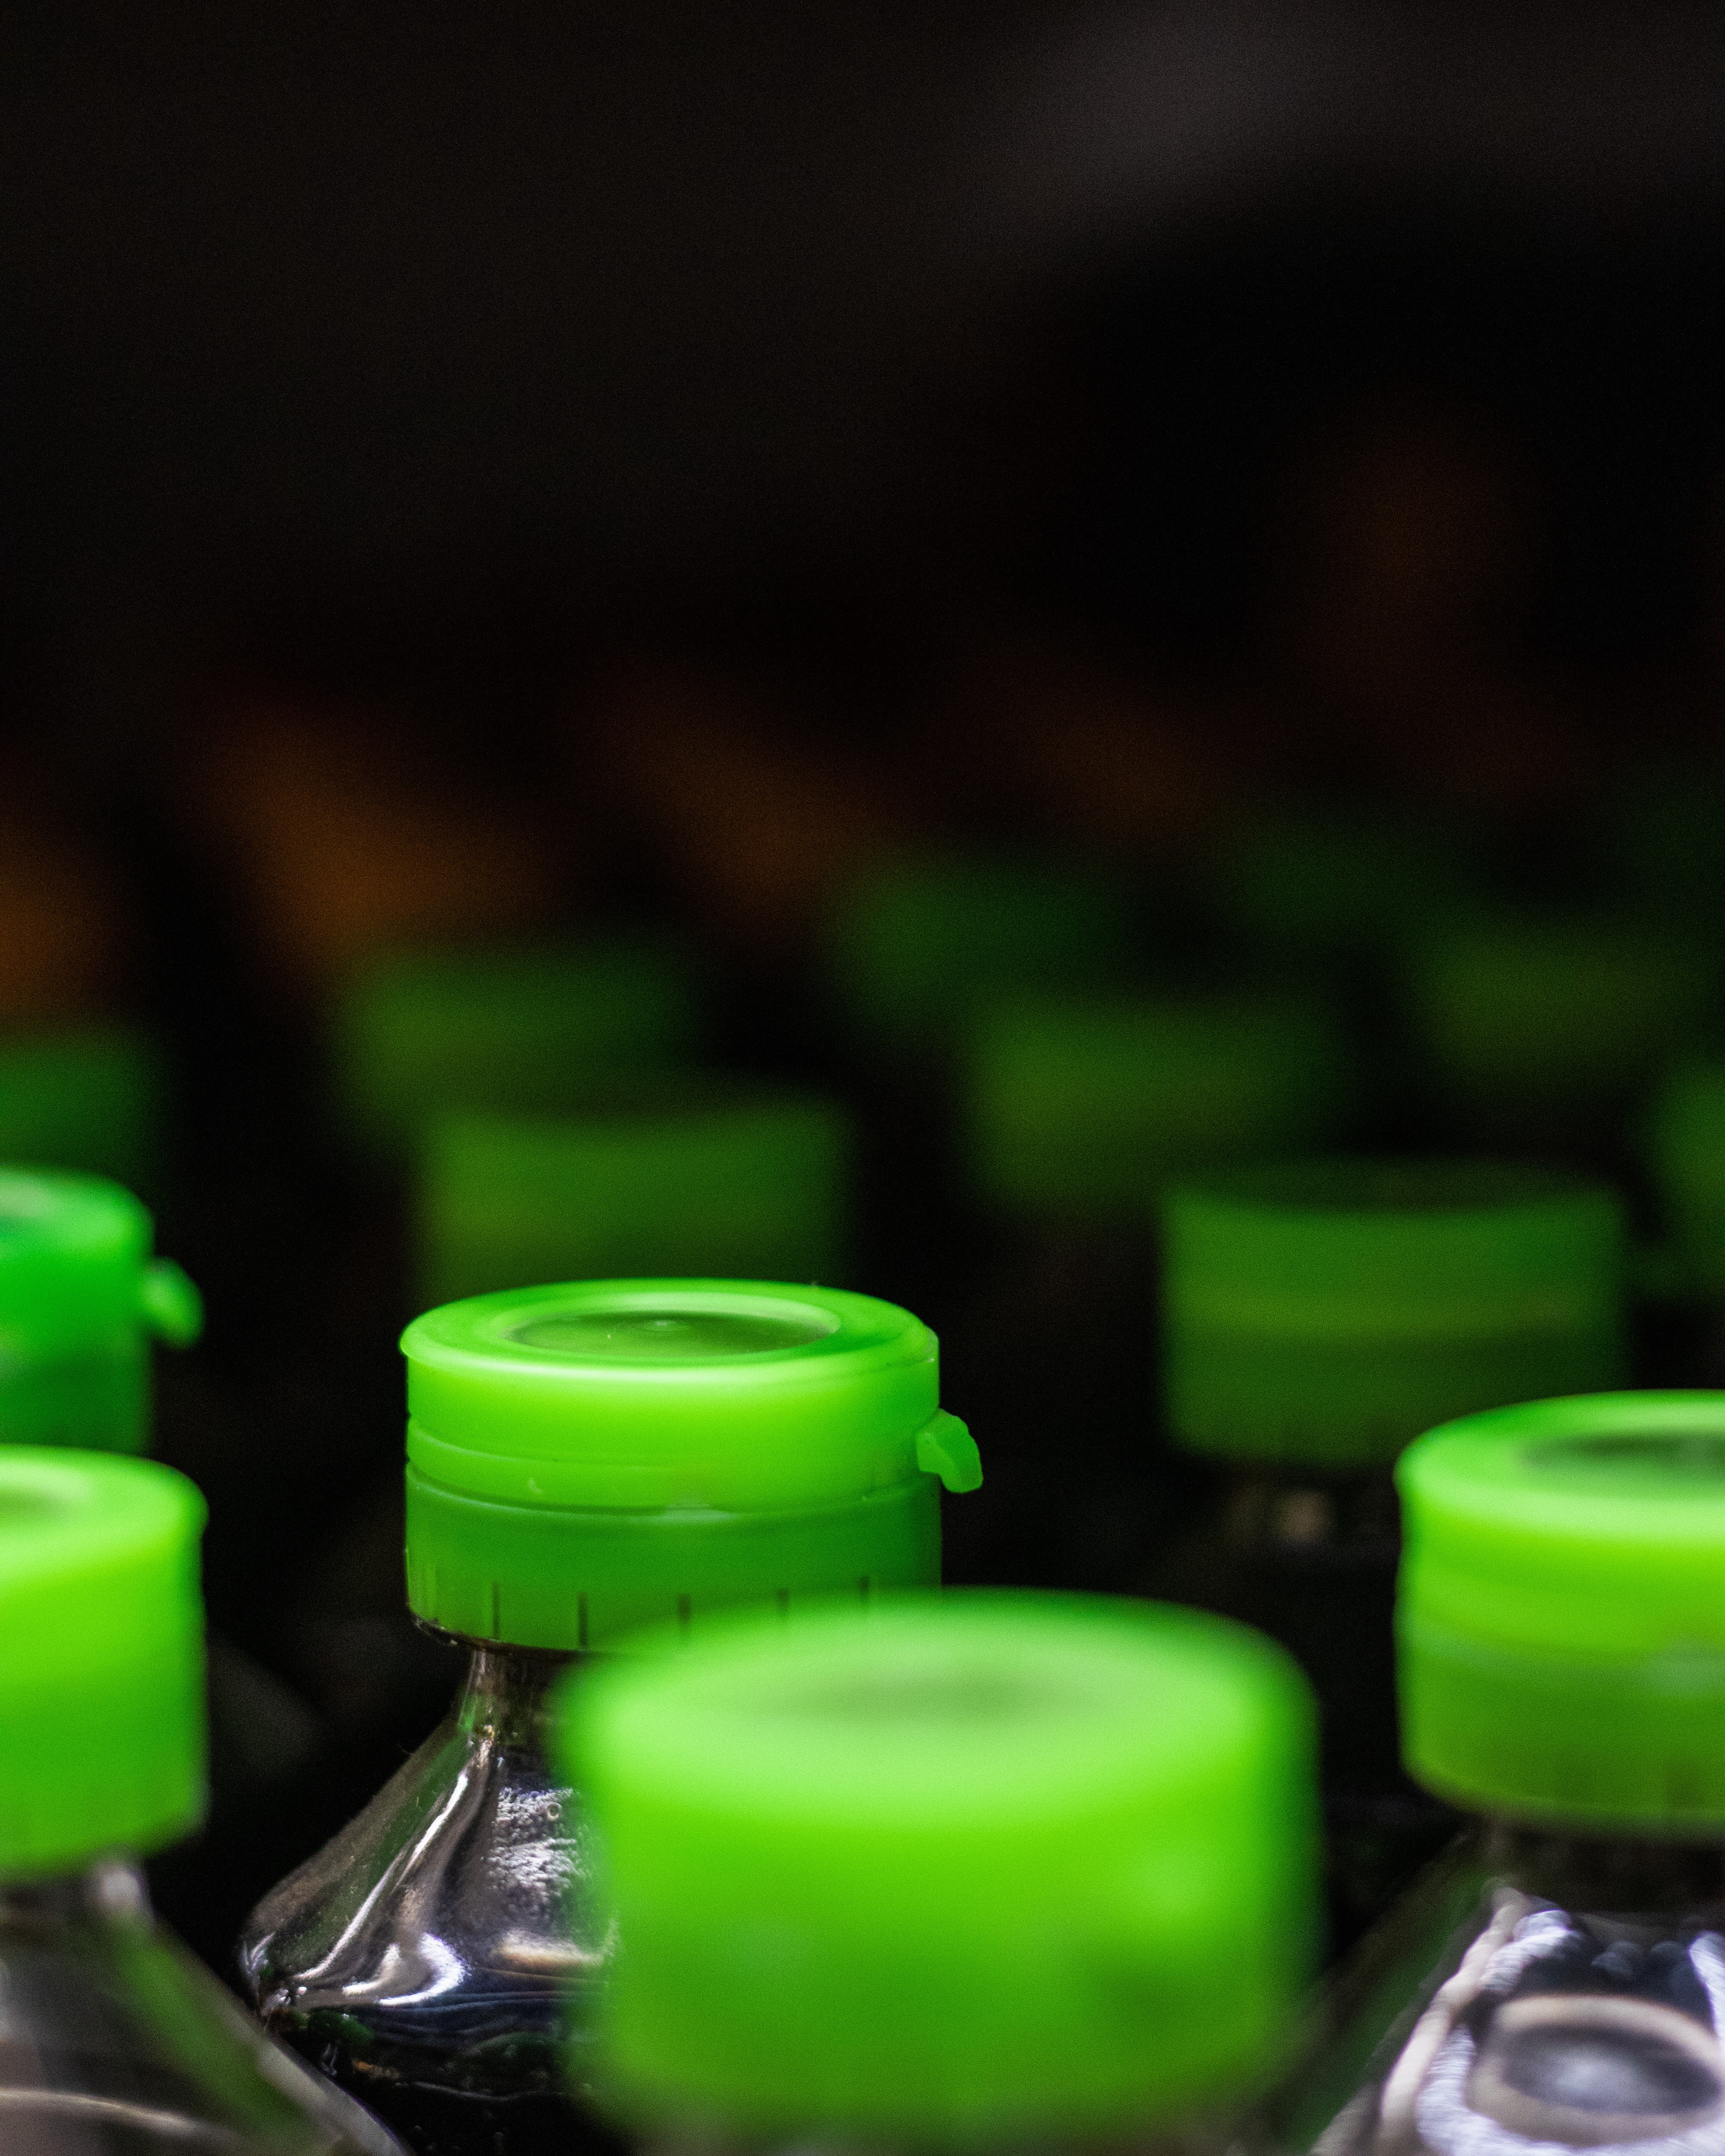 A group of plastic bottles, focusing on their bright green plastic caps.